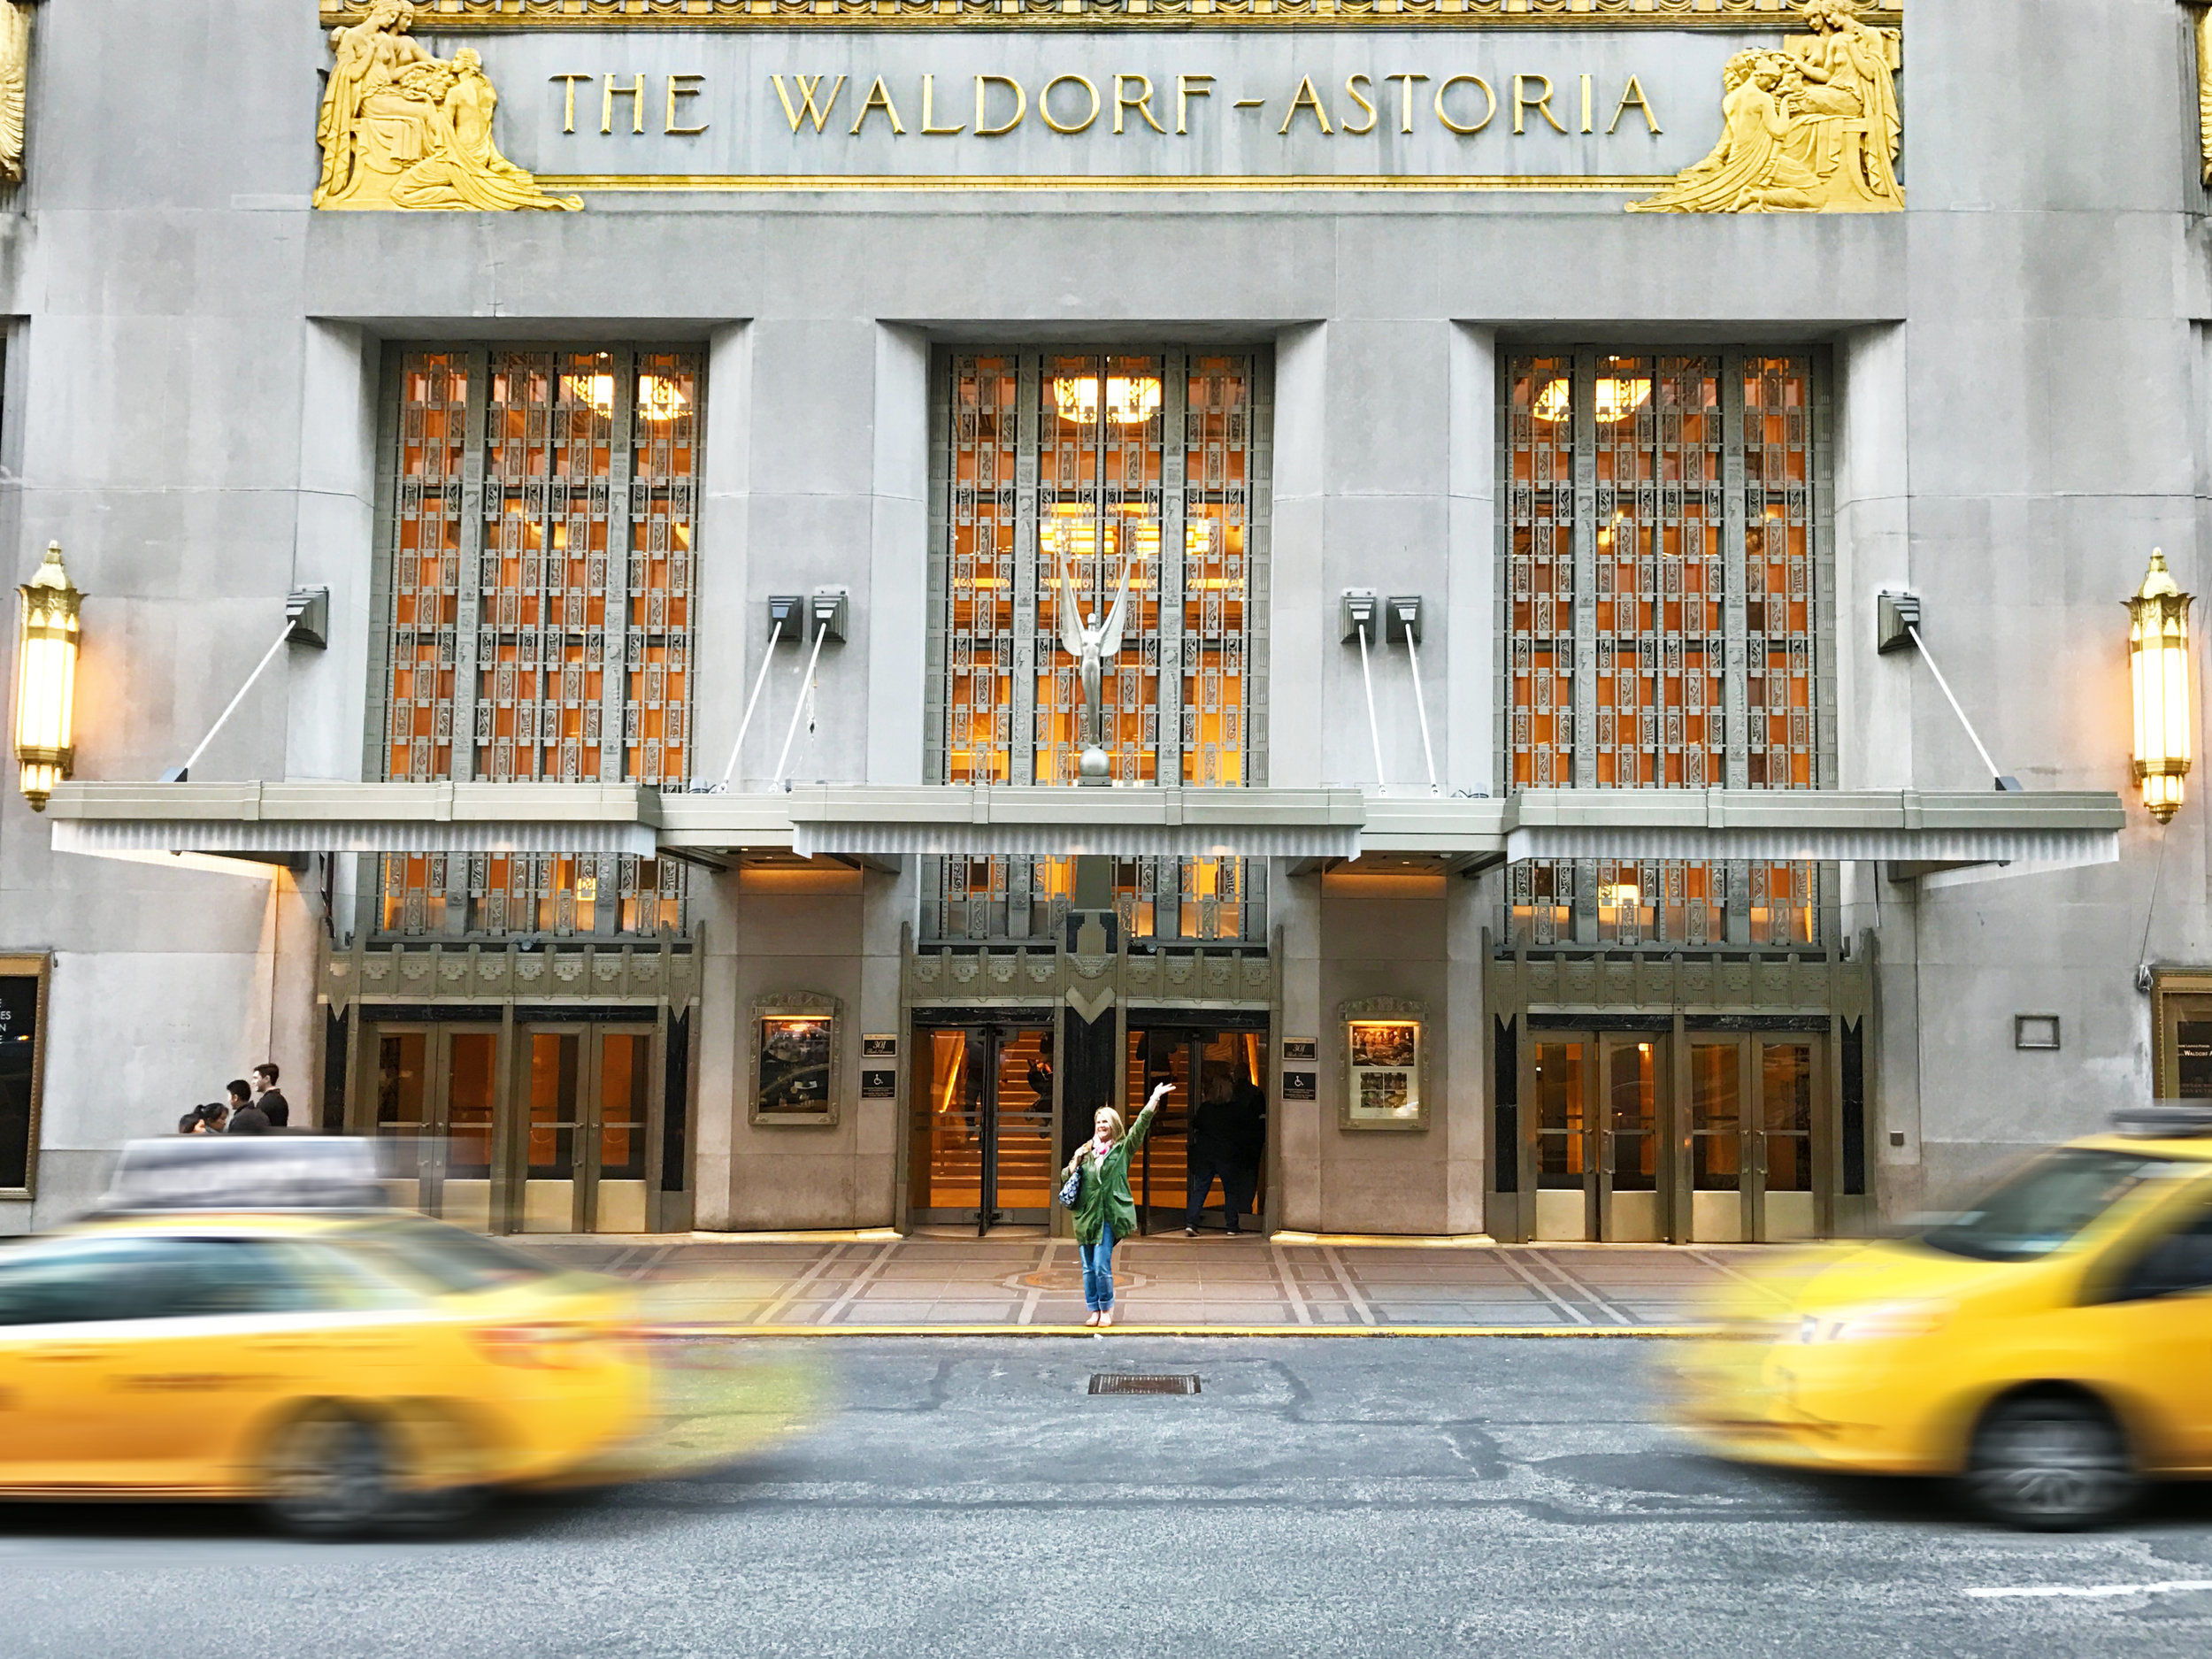 Waldorf-Astoria NYC